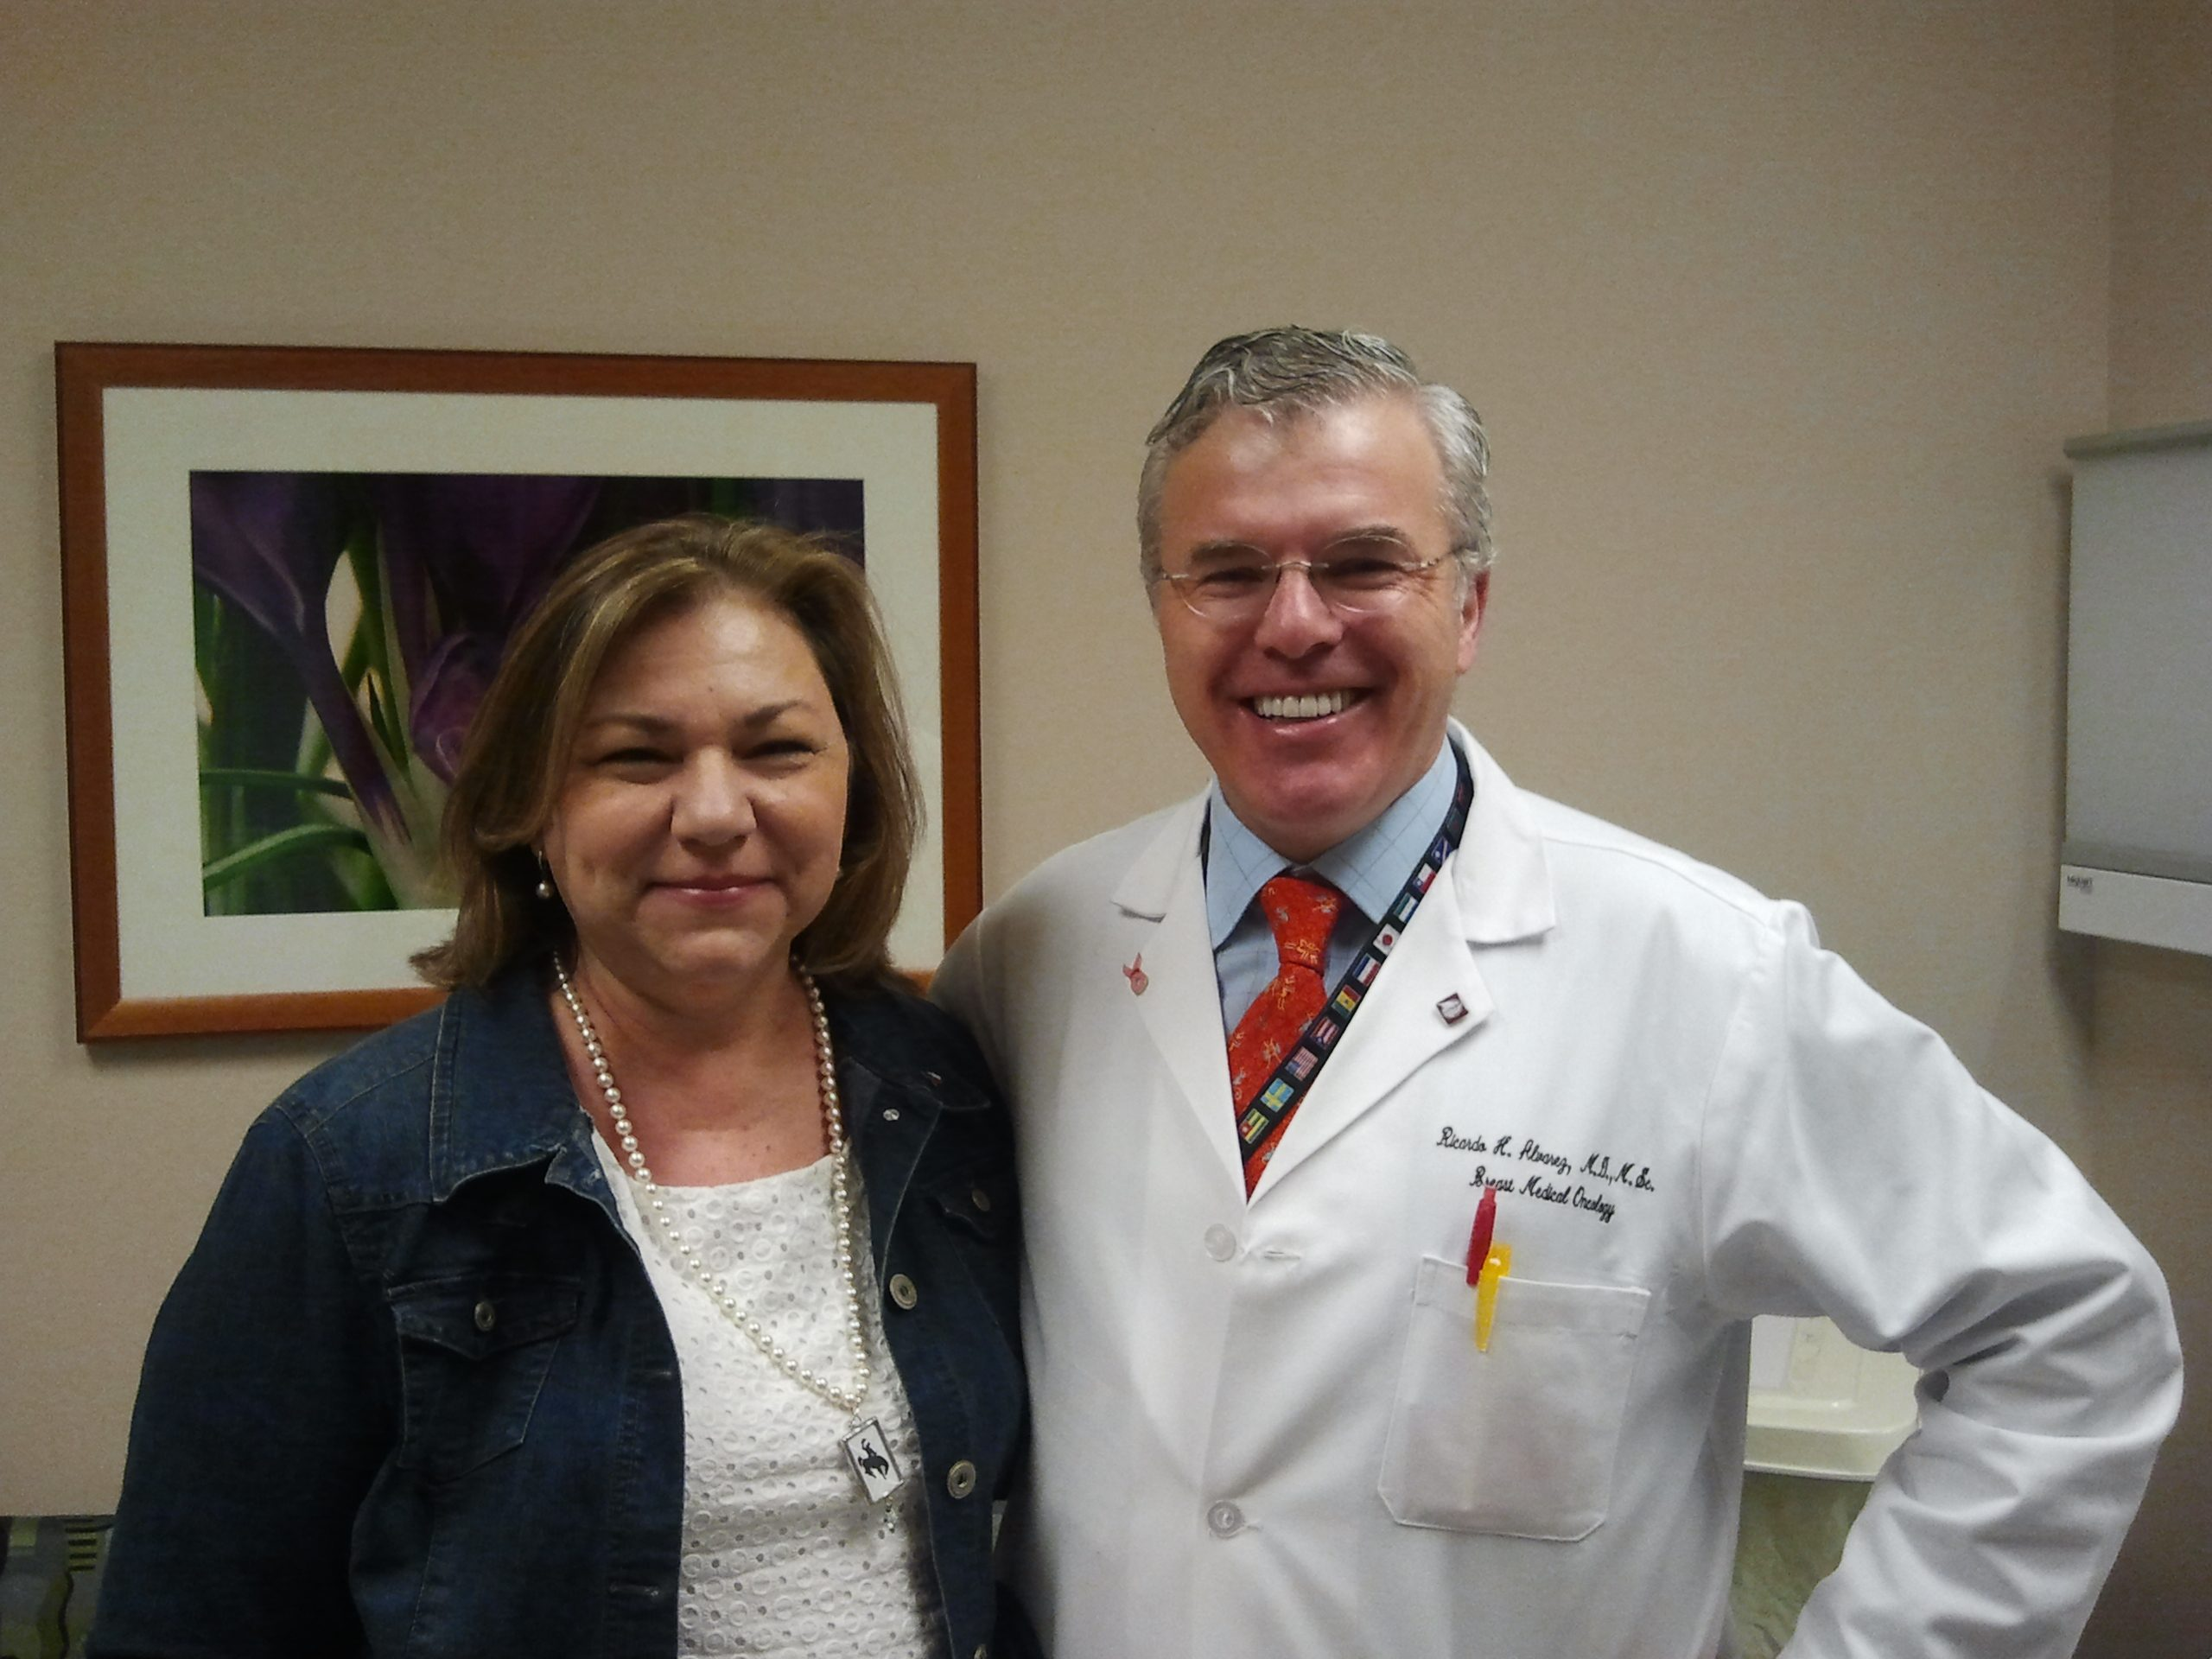 Terry Arnold with Ricardo Alvarez, M.D.